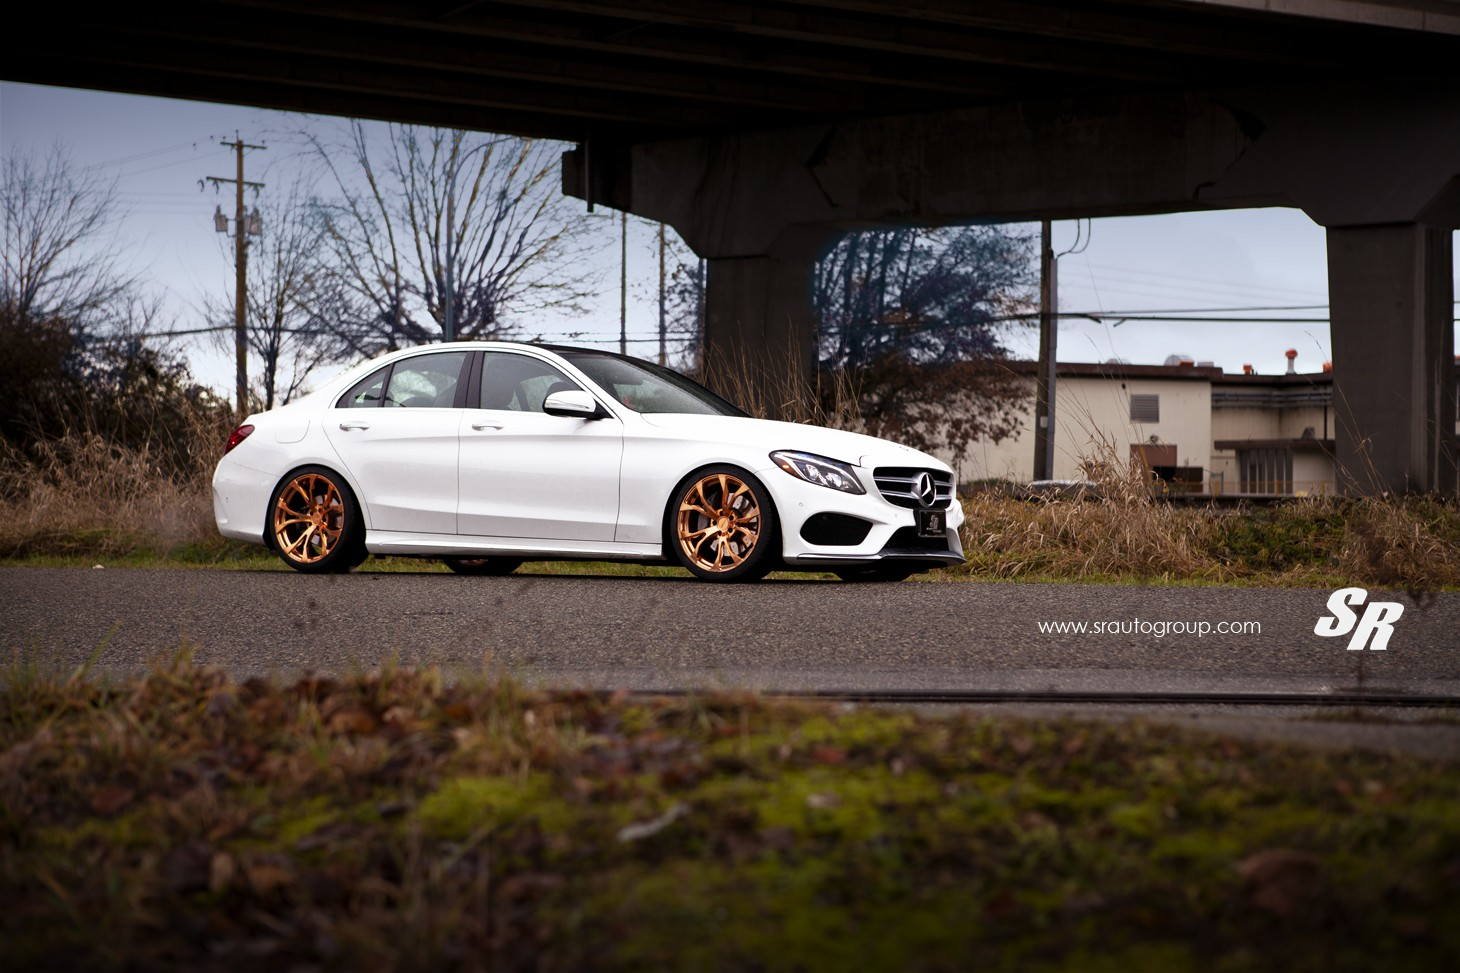 2015 Mercedes C300 Gets Gold Pur Wheels  Shows Its Rich